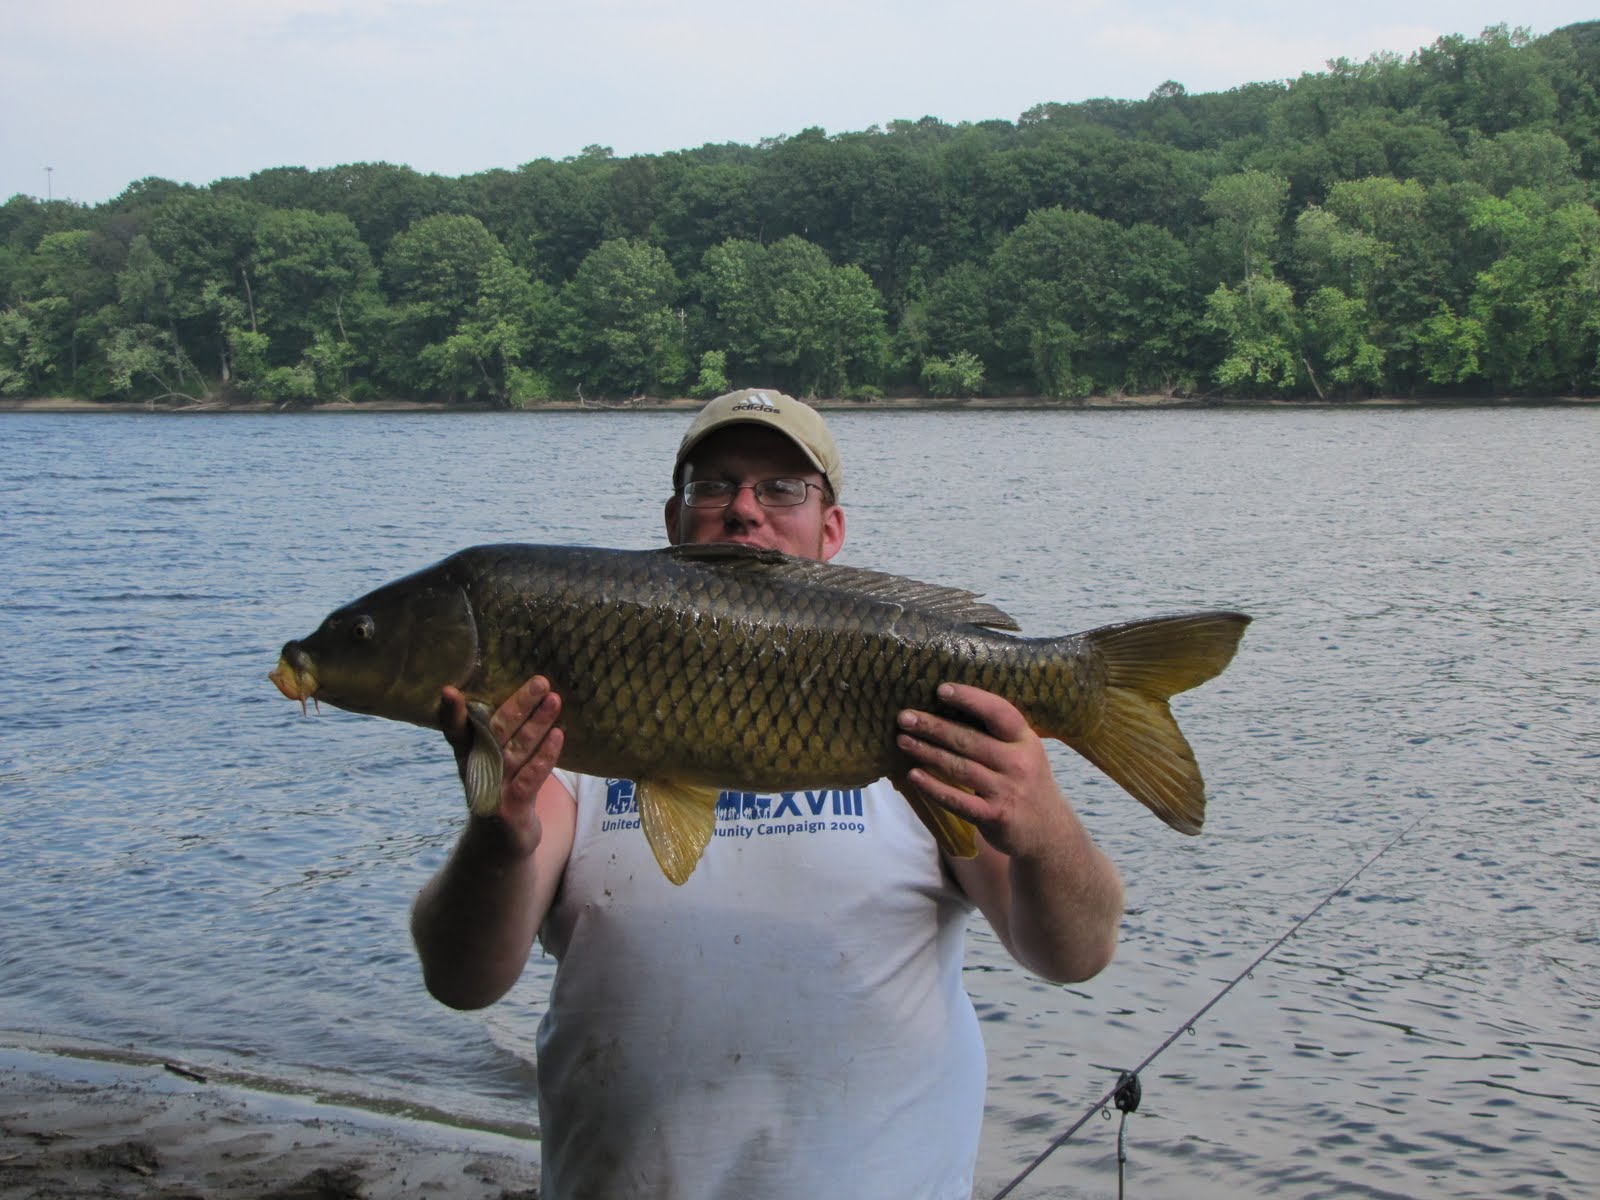 Southern new england outdoor and nature site connecticut for Connecticut river fishing